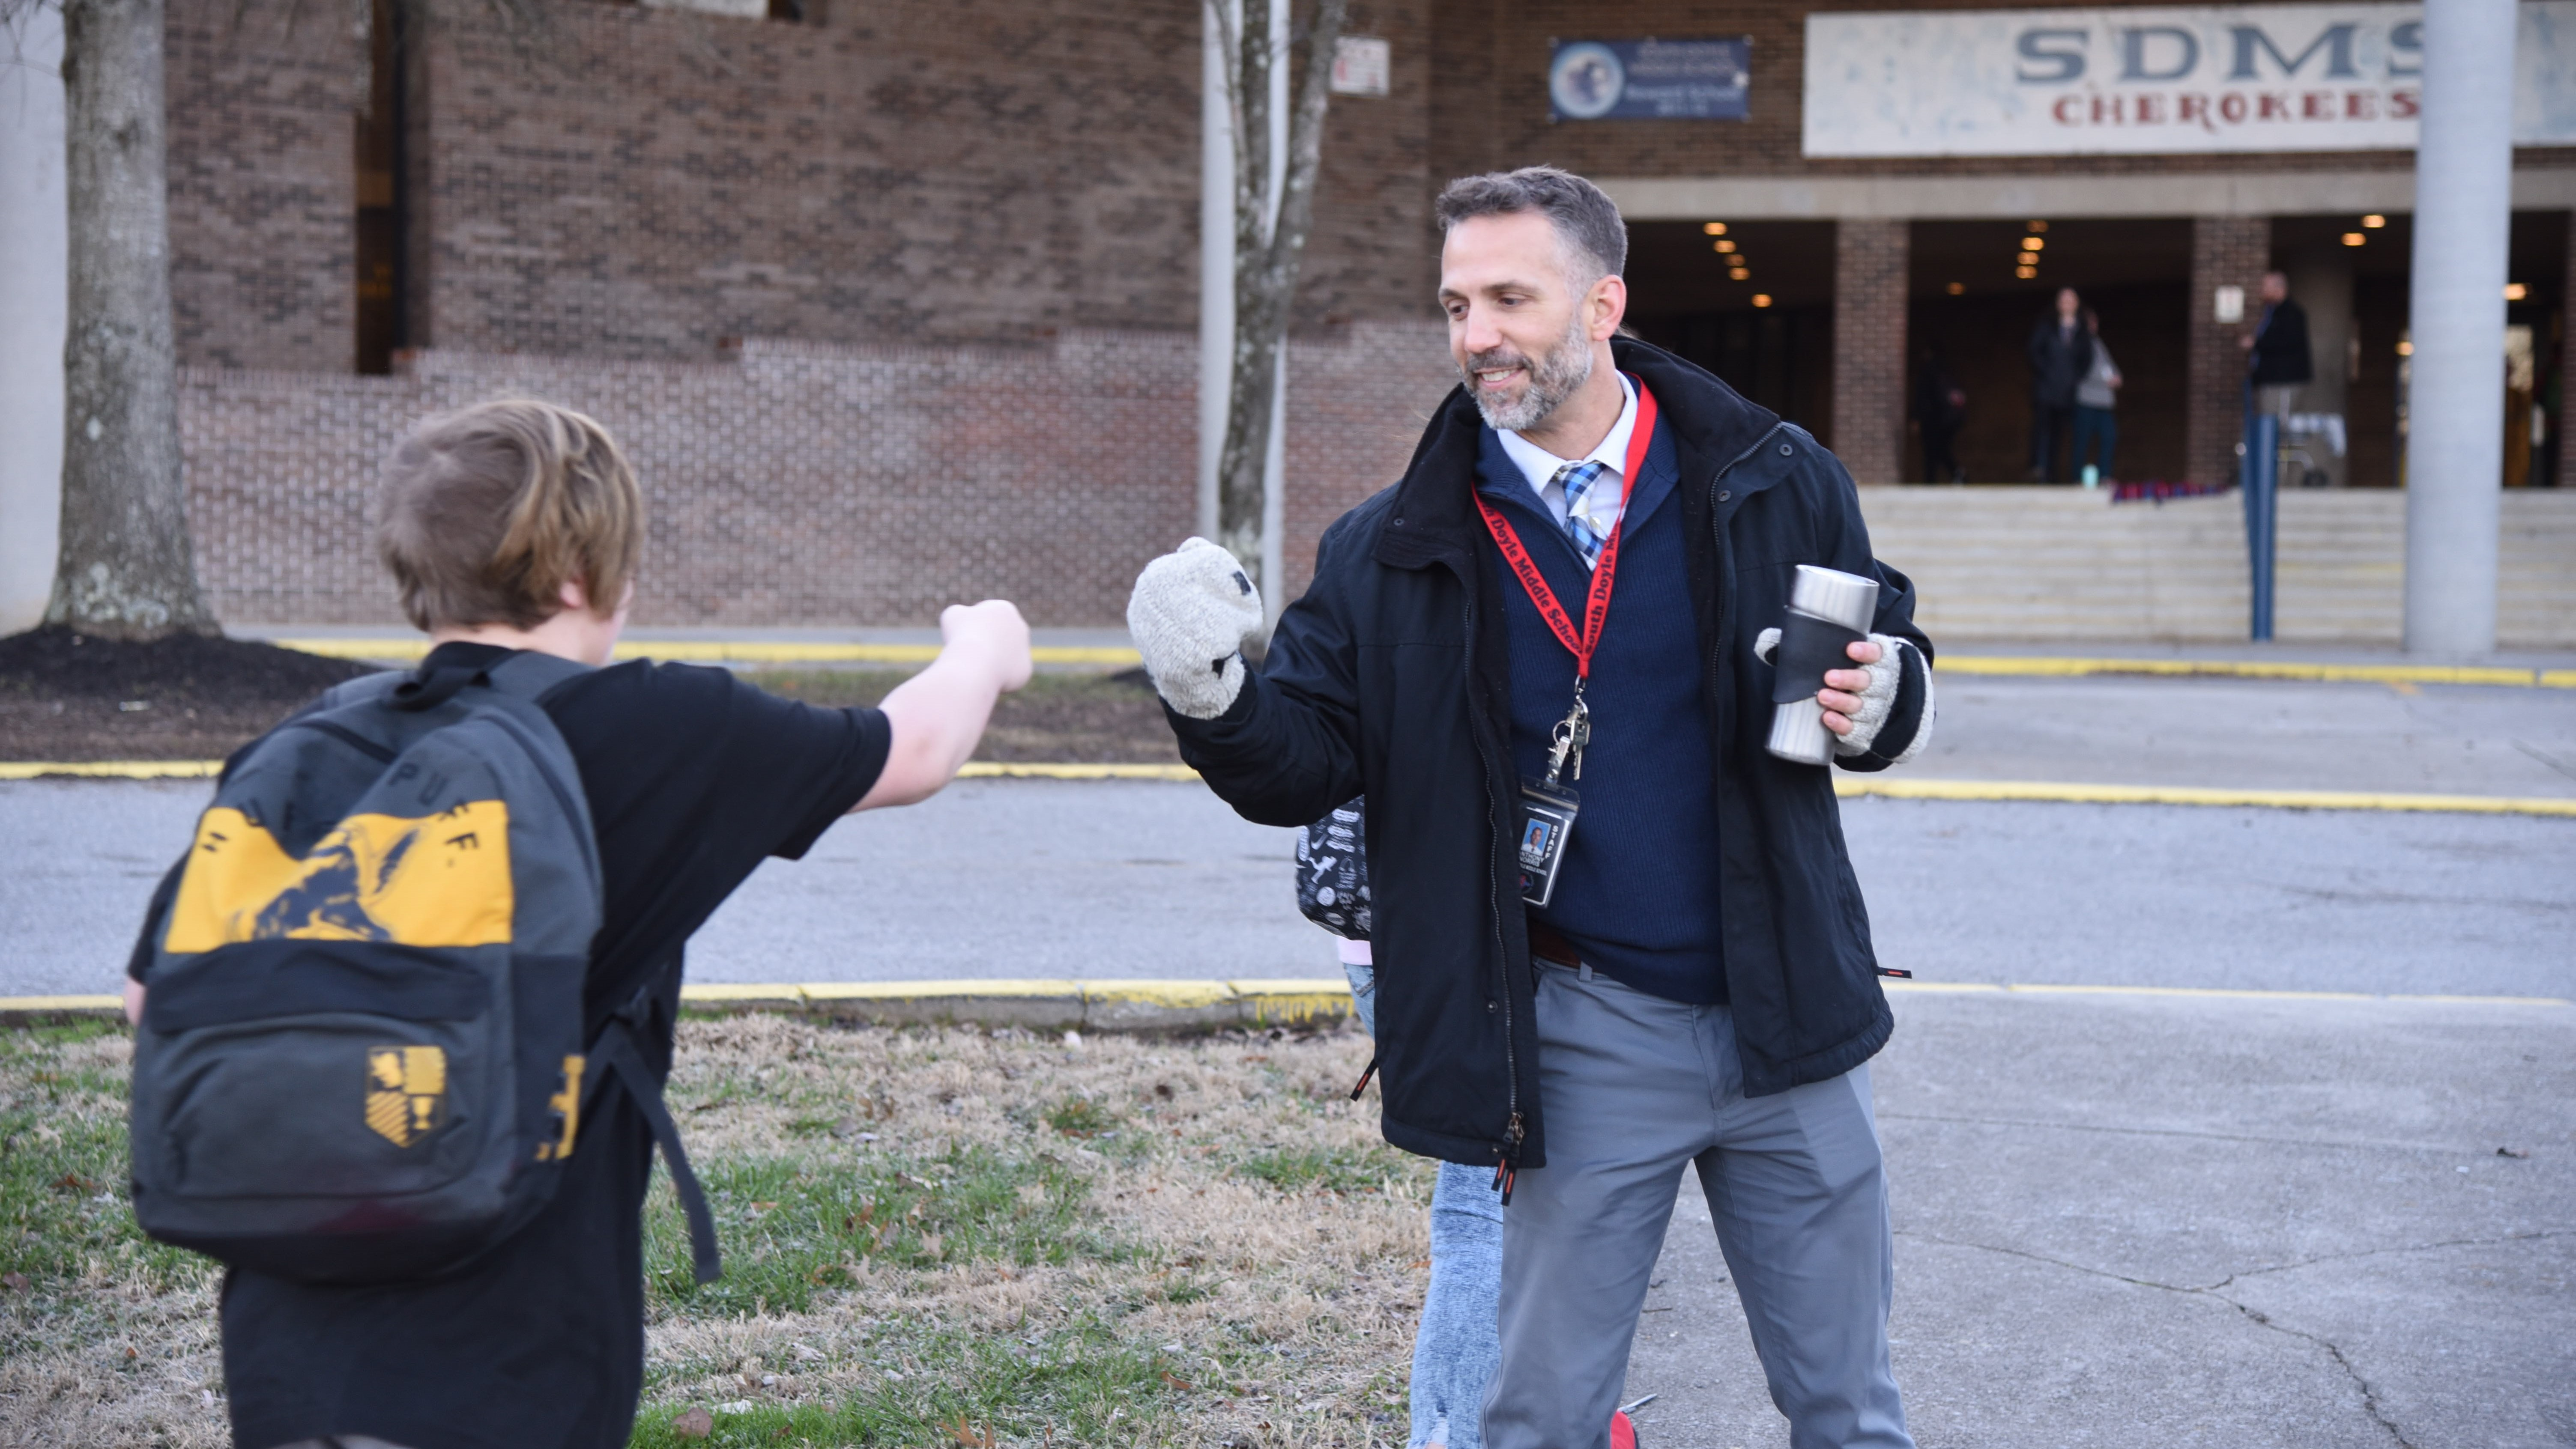 South-Doyle Middle School Principal Anthony Norris greets students on Jan. 8, 2020. Norris comes from a family of educators that includes his mother, Bonny Kate Elementary Principal Linda Norris.